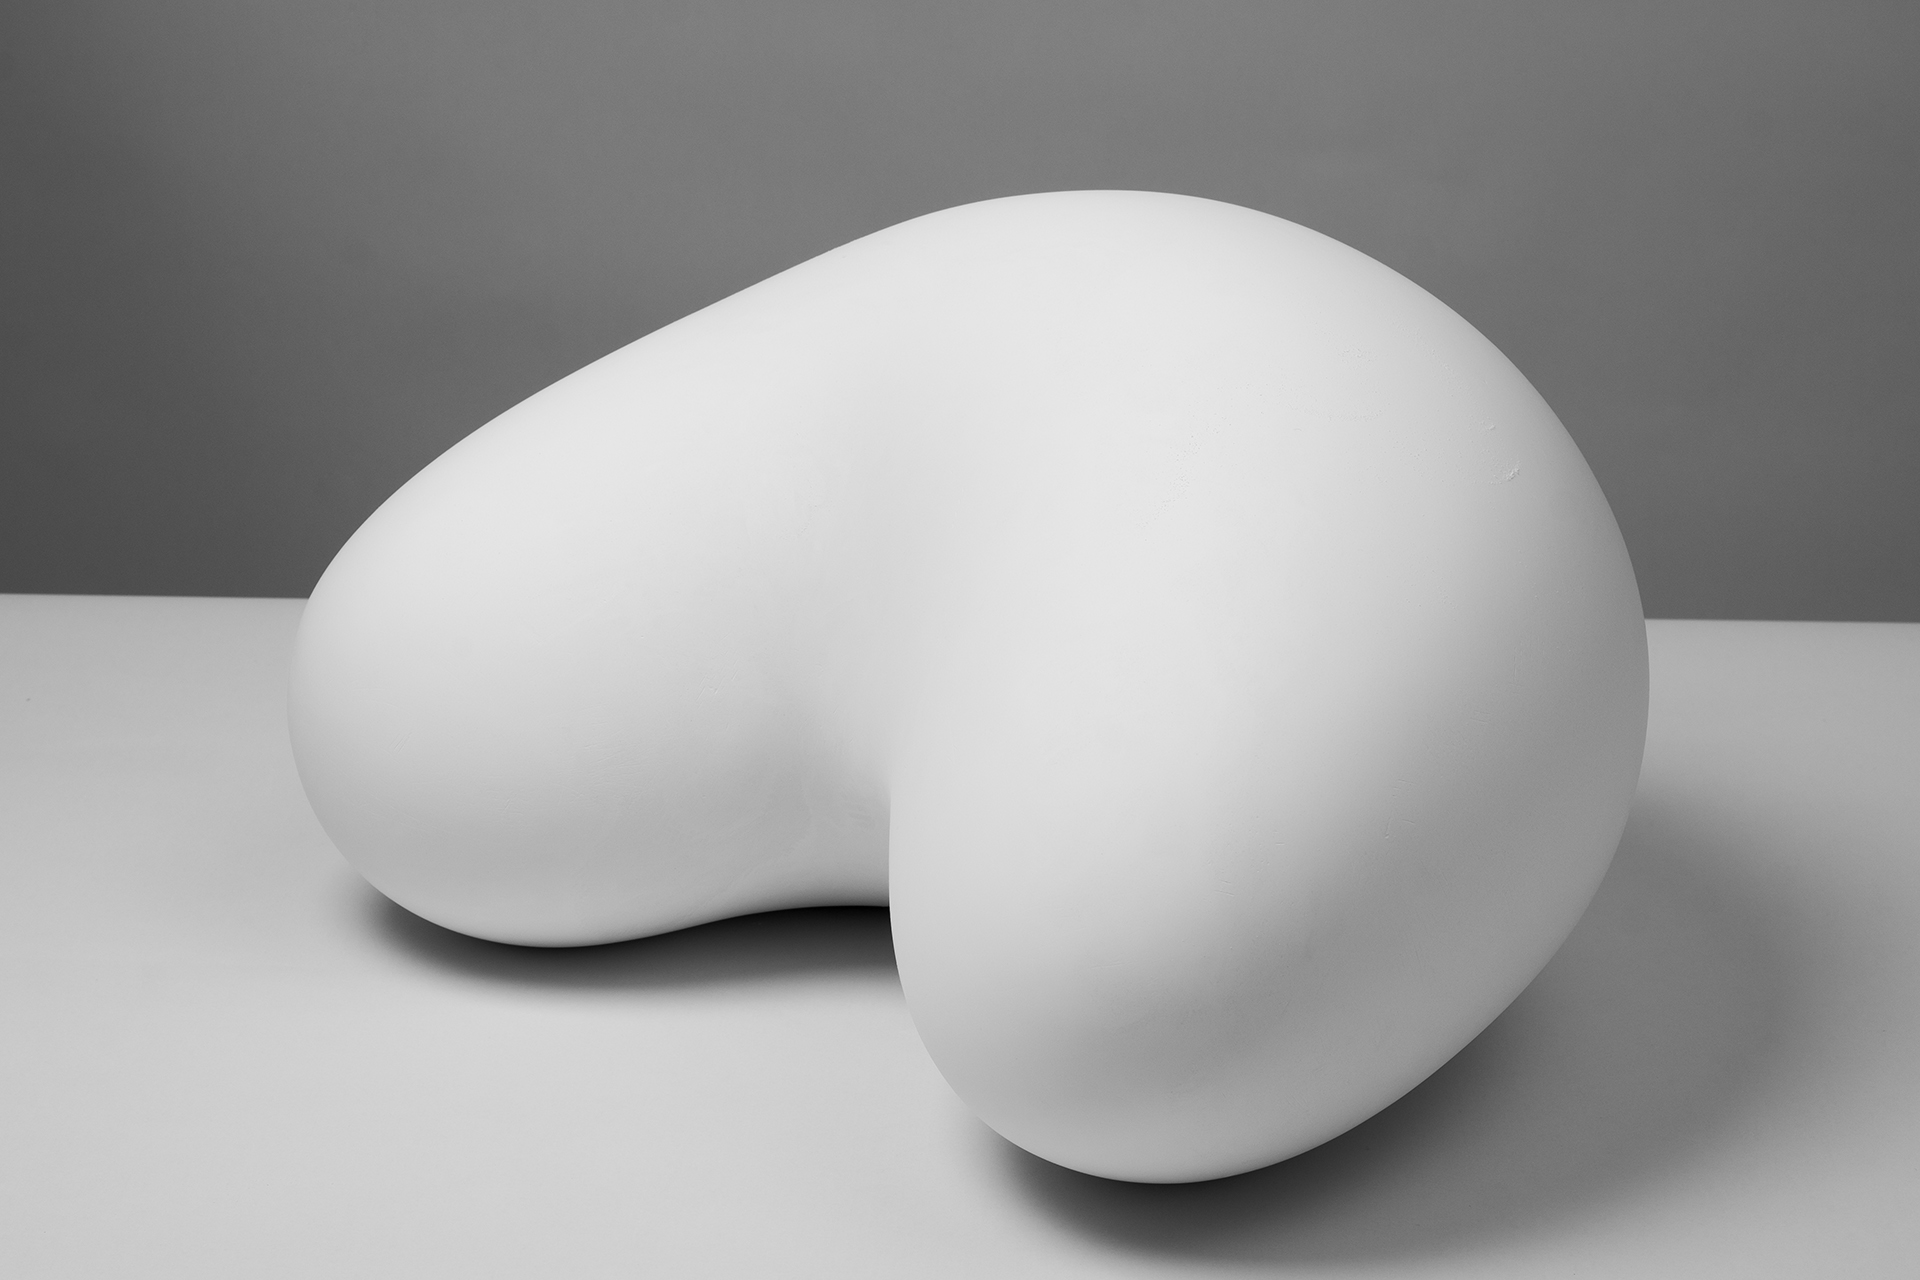 Dominique Edwards, Overlap, Plaster of Paris, 2019